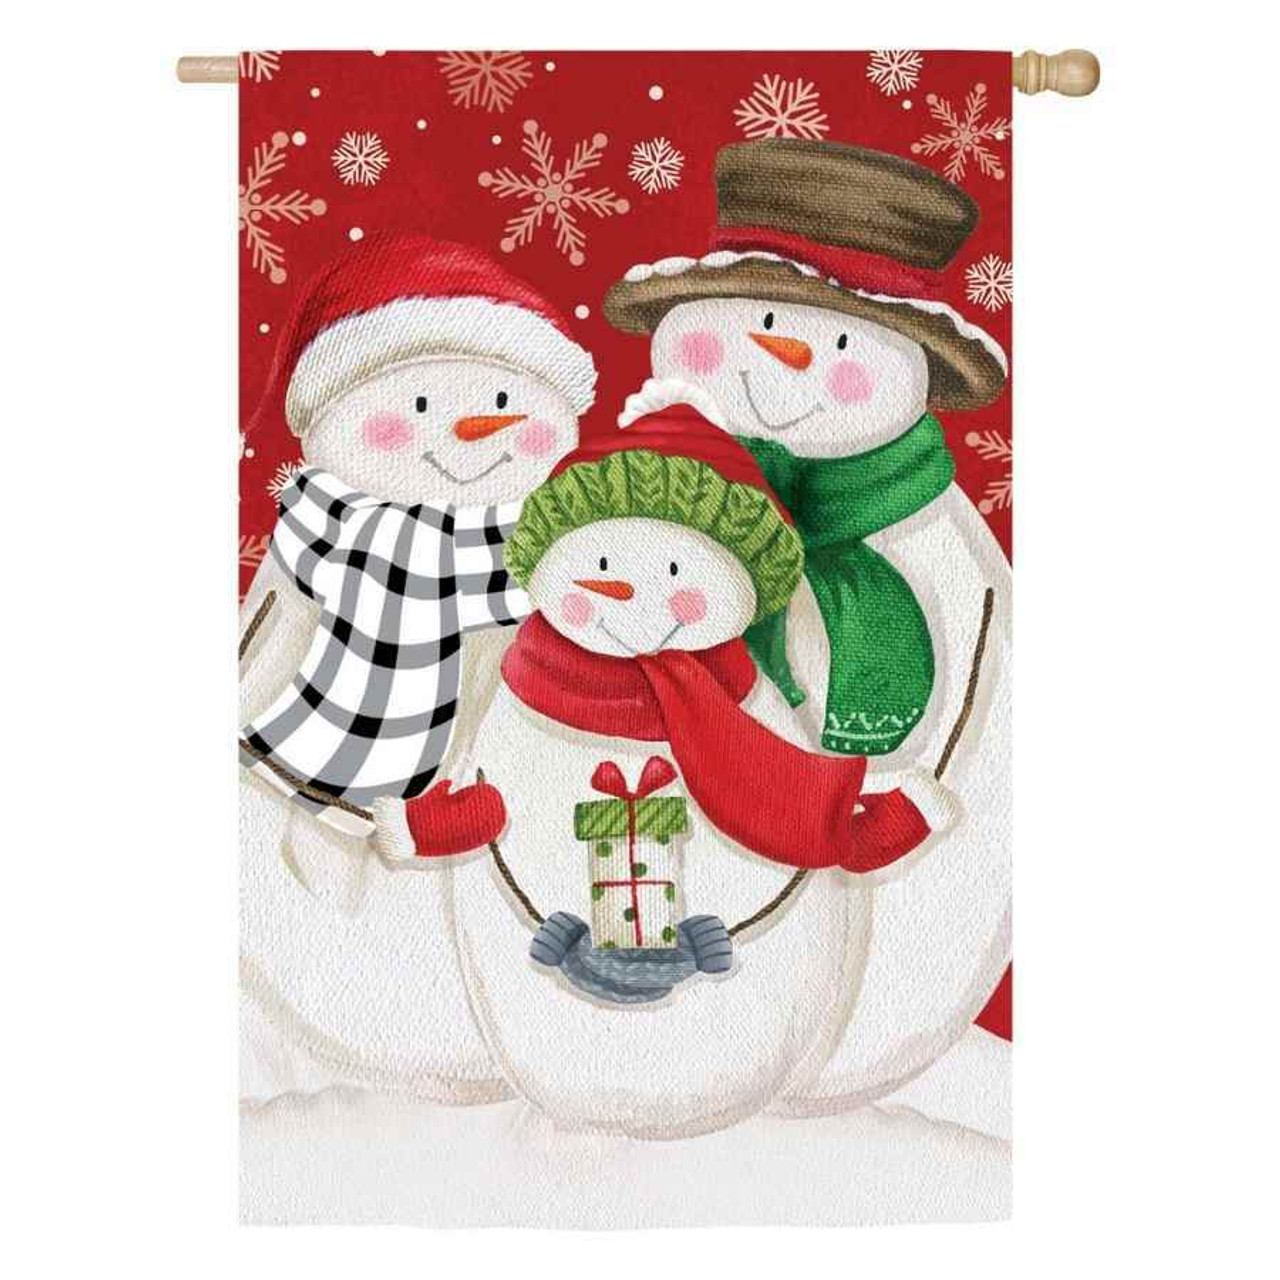 A house flag with a family of 3 snowmen, all wearing hats, gloves, and scarfs. The smallest snowman is holding a present. The background is red with white snowflakes.